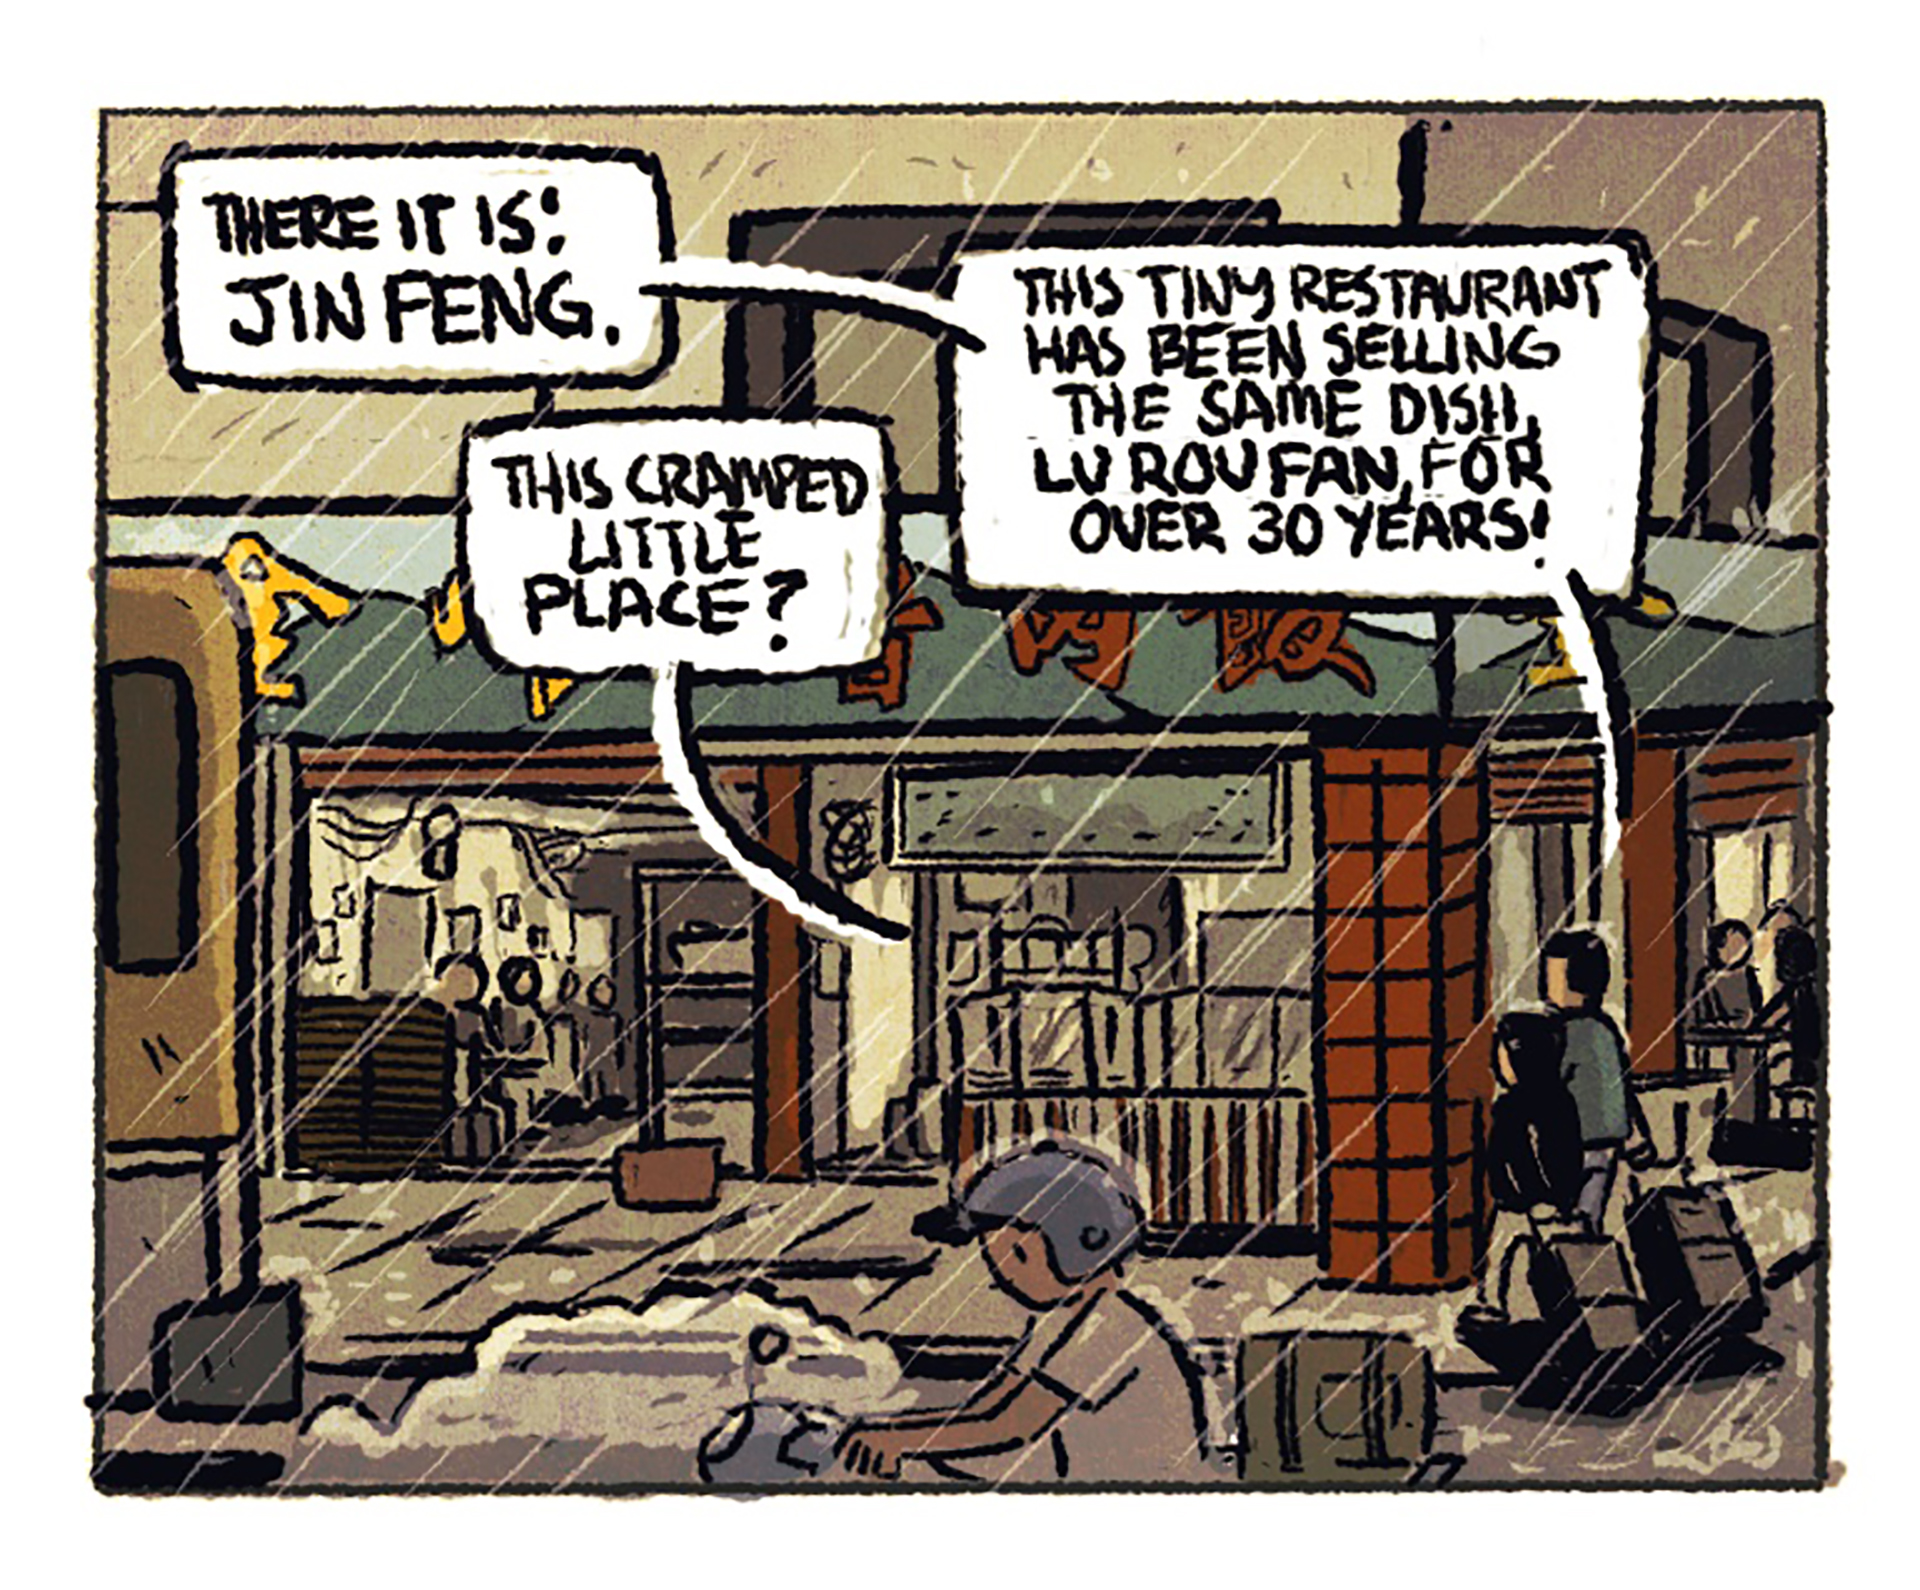 """The blue-and-green facade of a small restaurant that opens out onto the street; rain is coming down. 1st speech bubble: """"There it is! Jin Feng."""" 2nd speech bubble: """"This cramped little place?"""" 3rd speech bubble: """"This tiny restaurant has been selling the same dish, lu rou fan, for over 30 years!"""""""